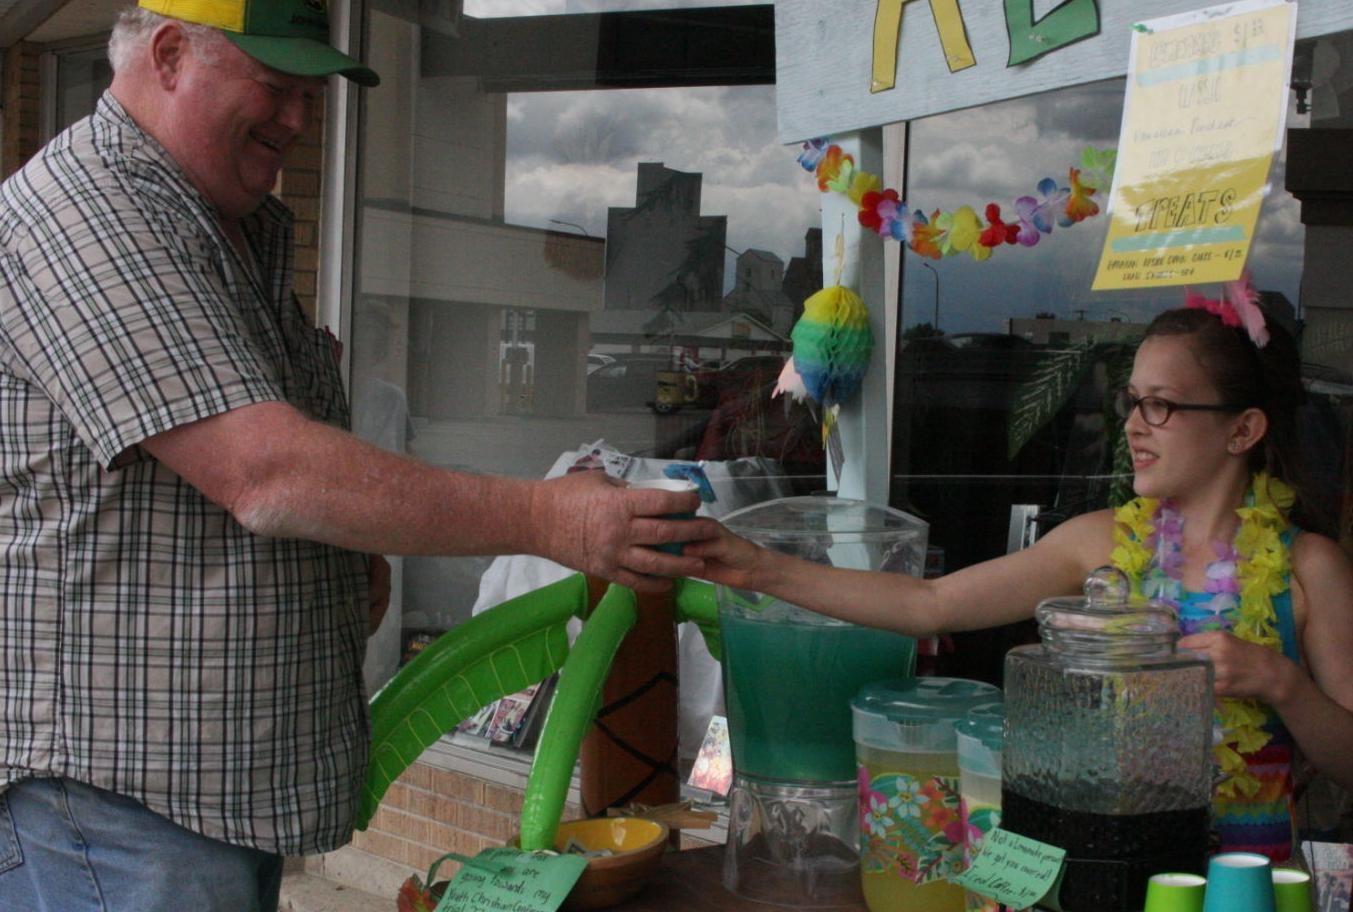 SIgn-ups have begun for Lemonade Day, now the race for the most creative recipe begins